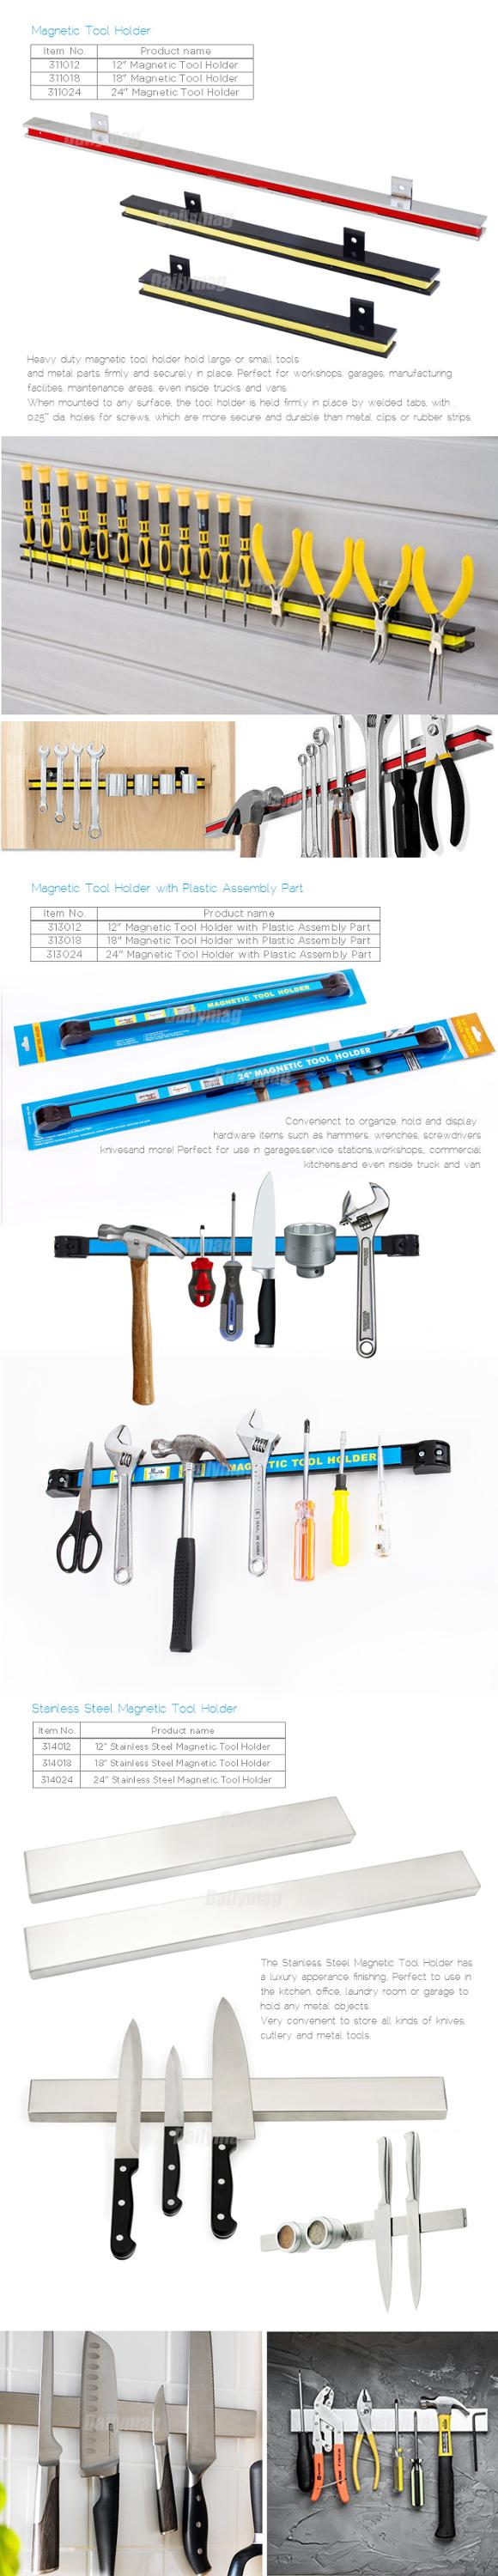 Magnetic Tool Holder Strong Tool Strip For Home, Garage, Office Tool Shop Magnet Tool Organizer